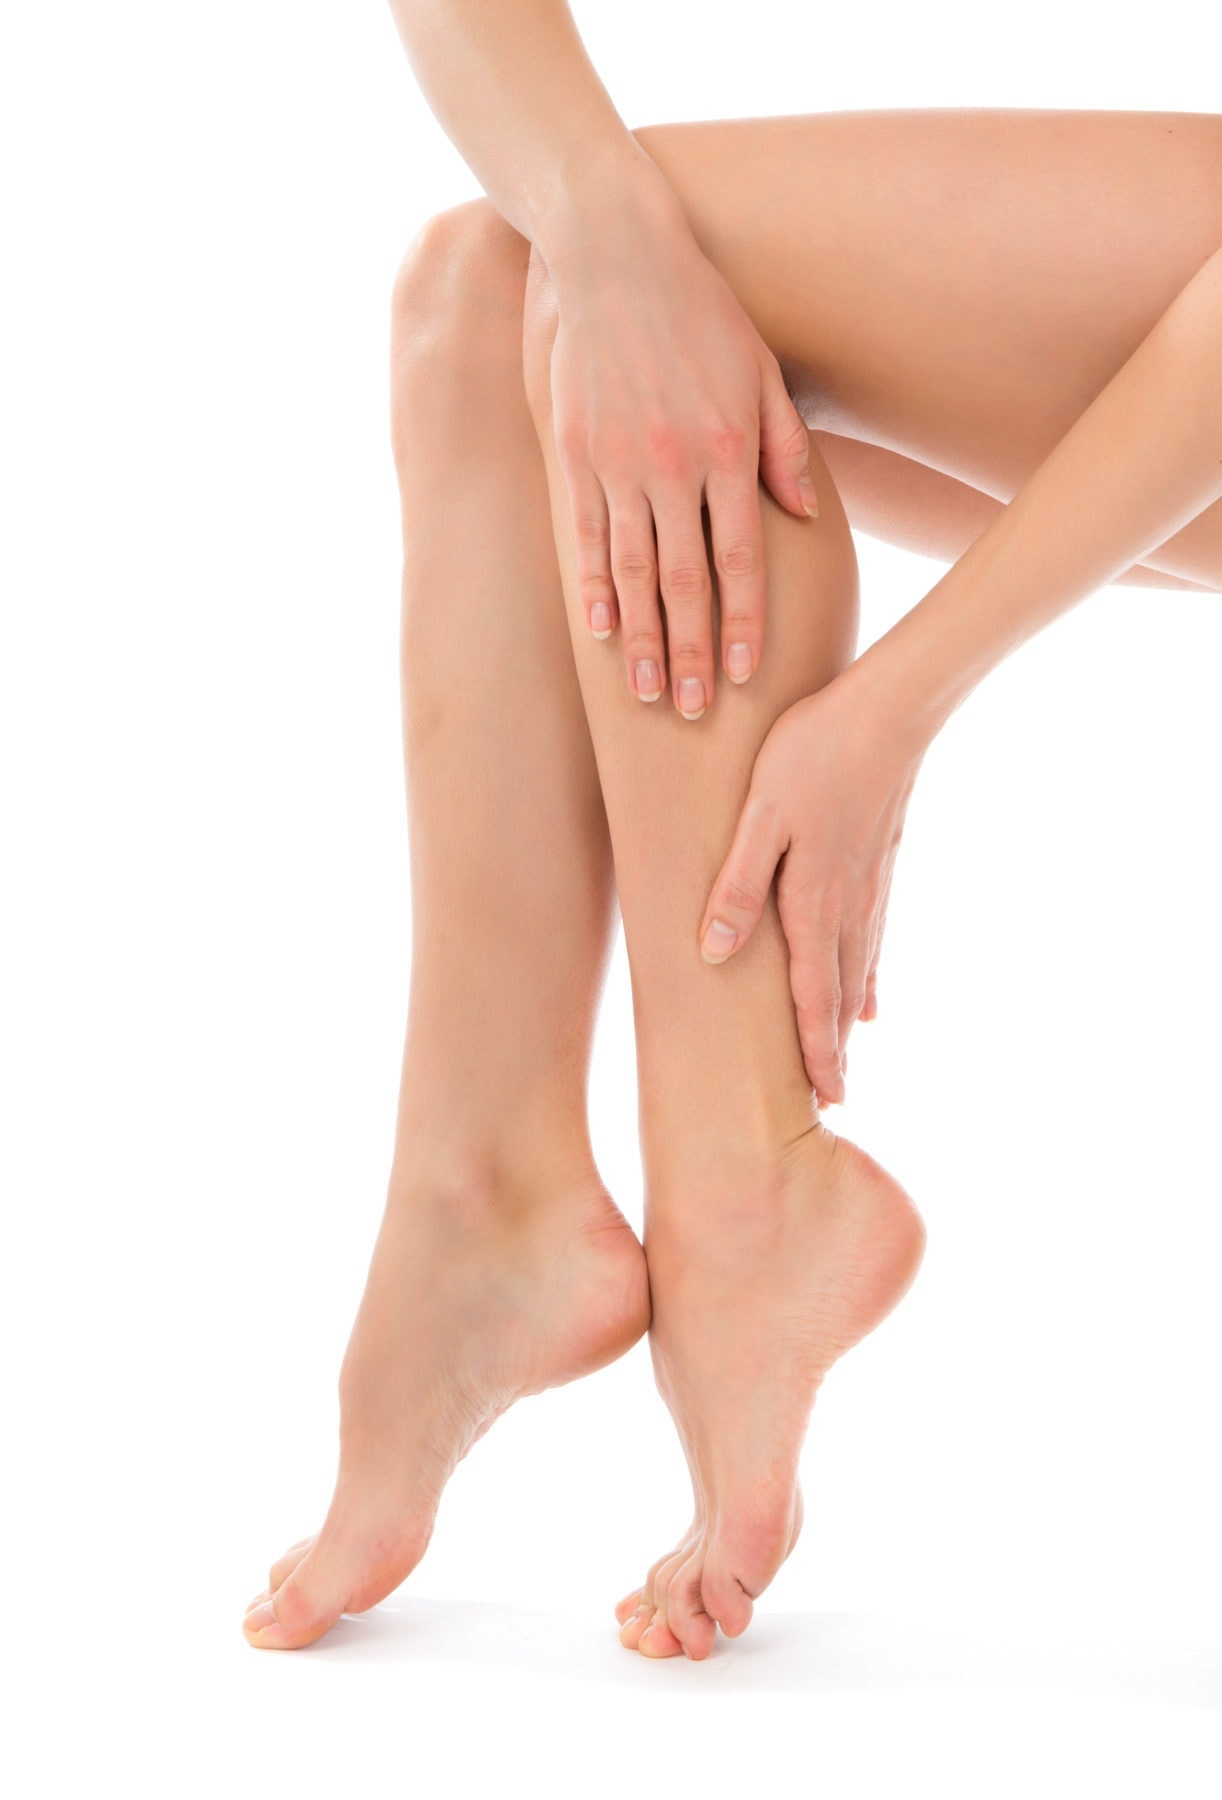 Leg Waxing At Le Petit Sanctuary, Taunton